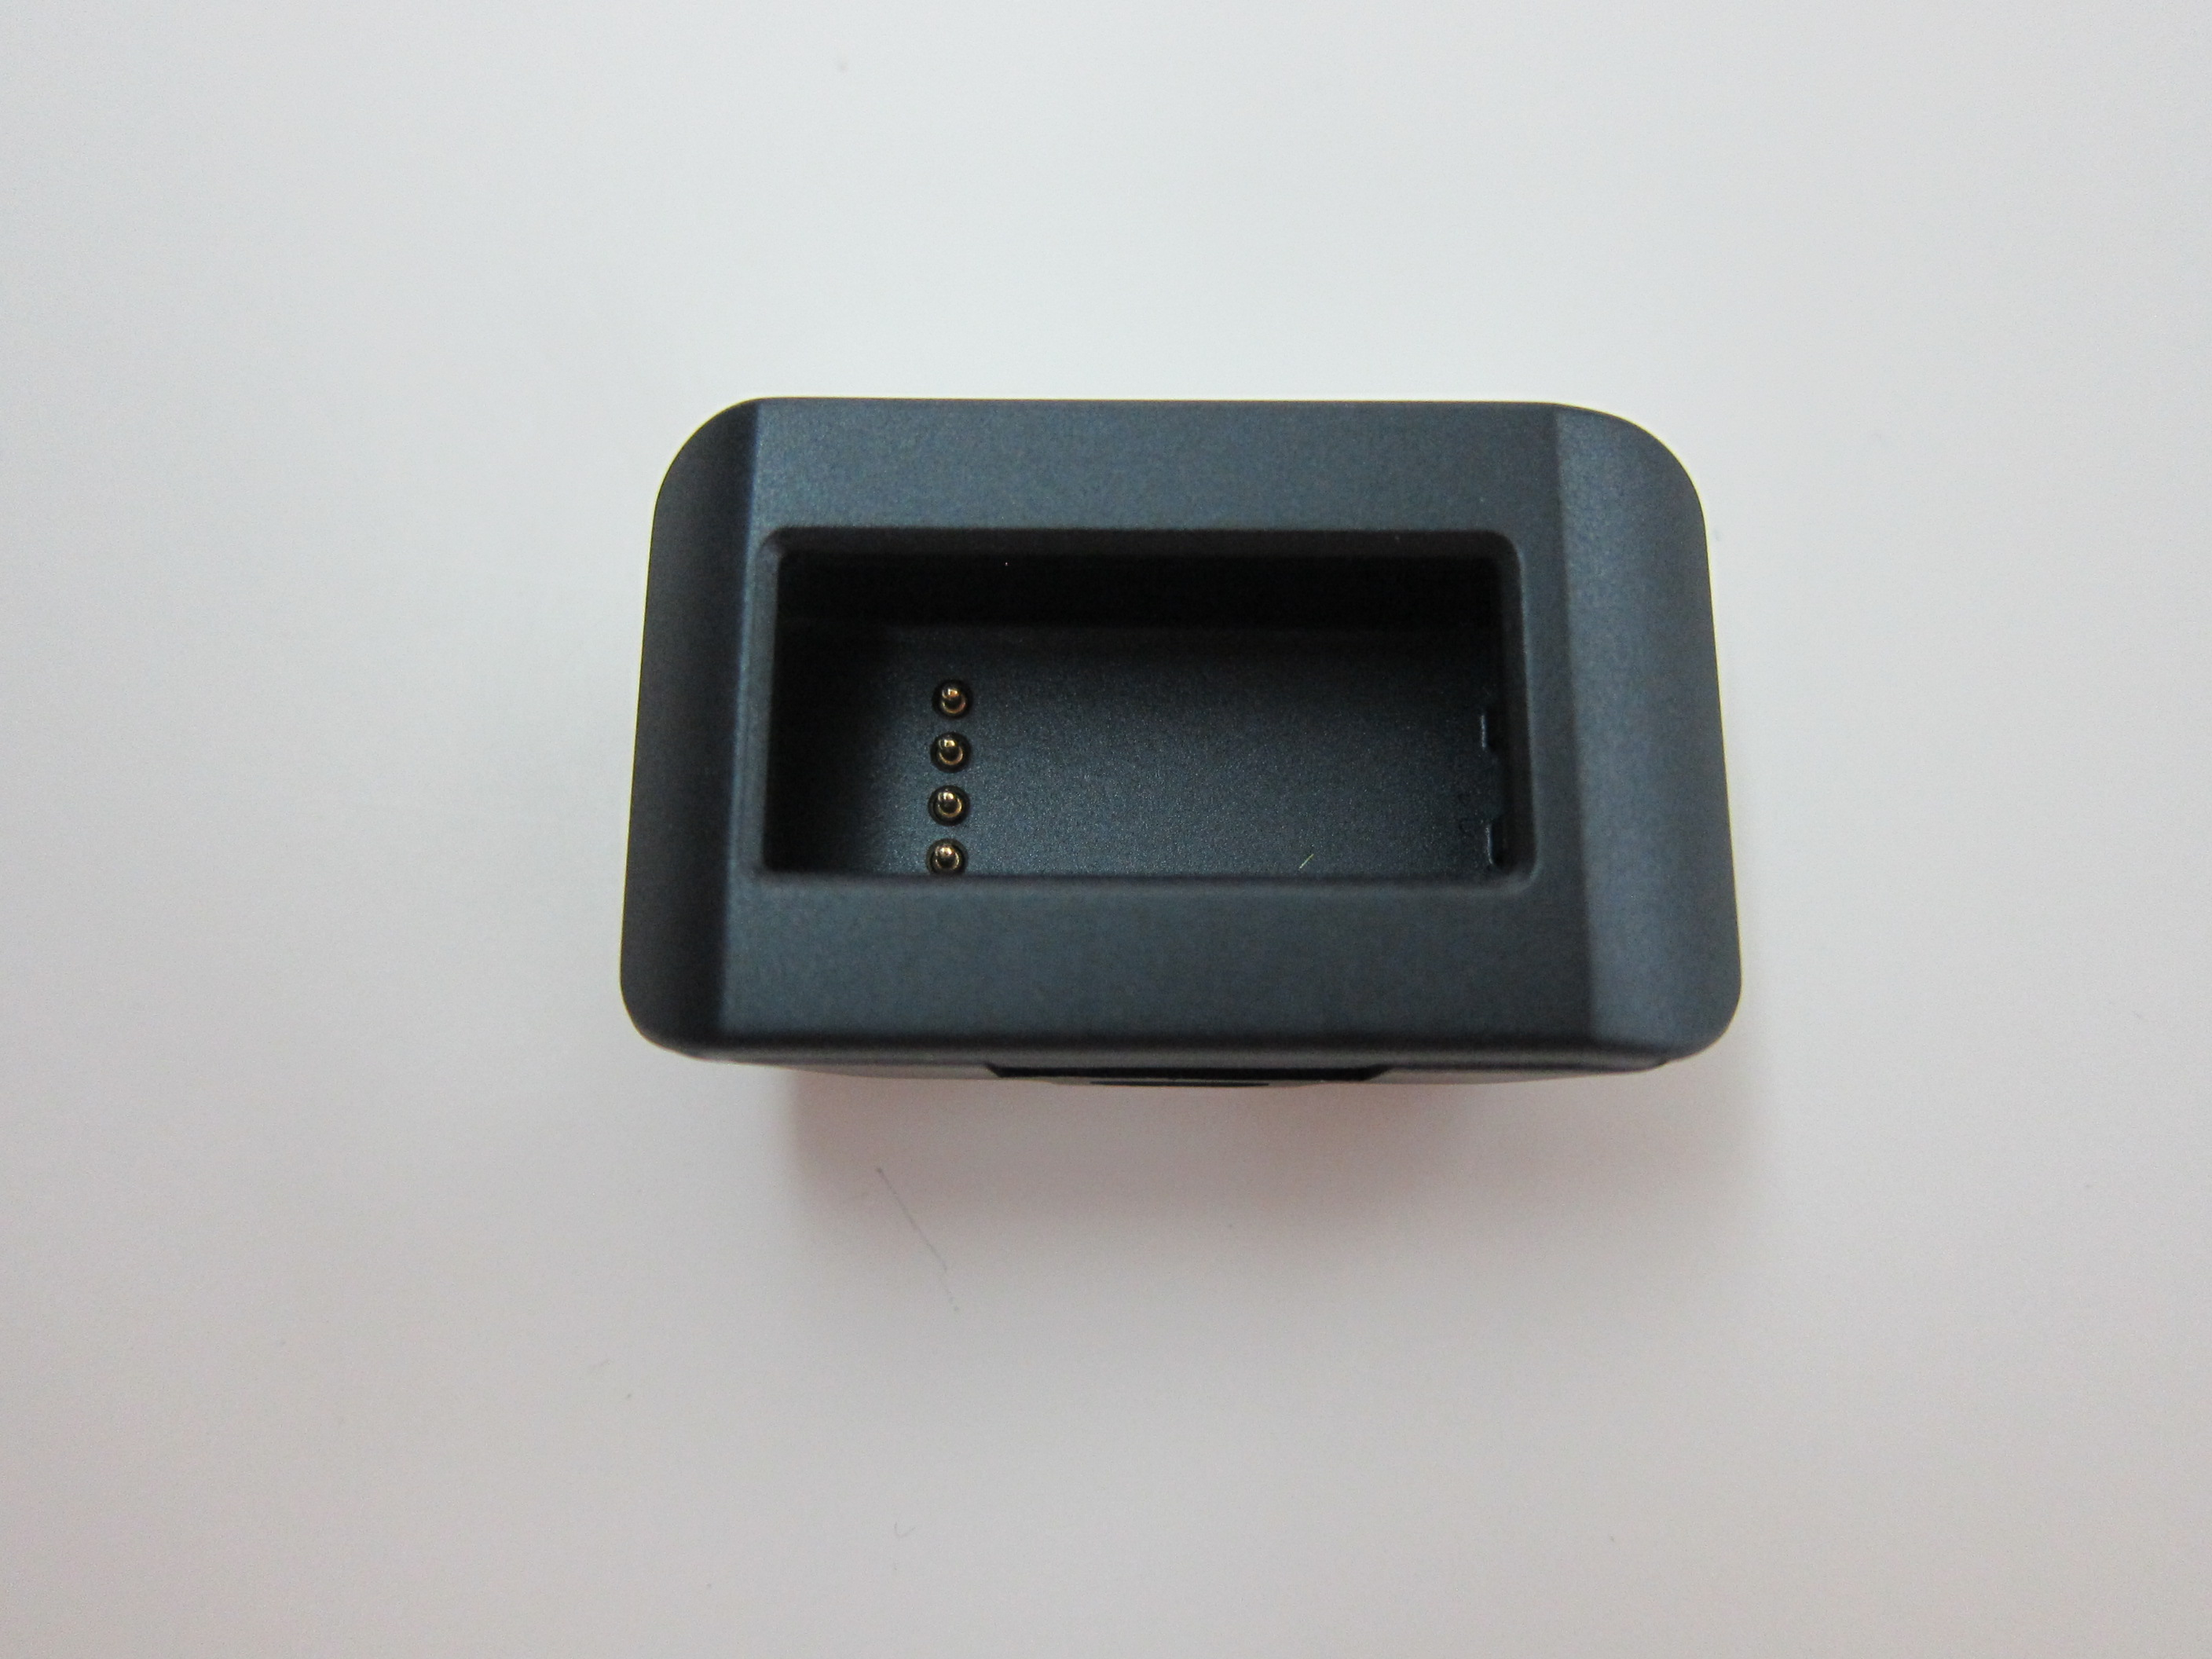 Striiv touch charger